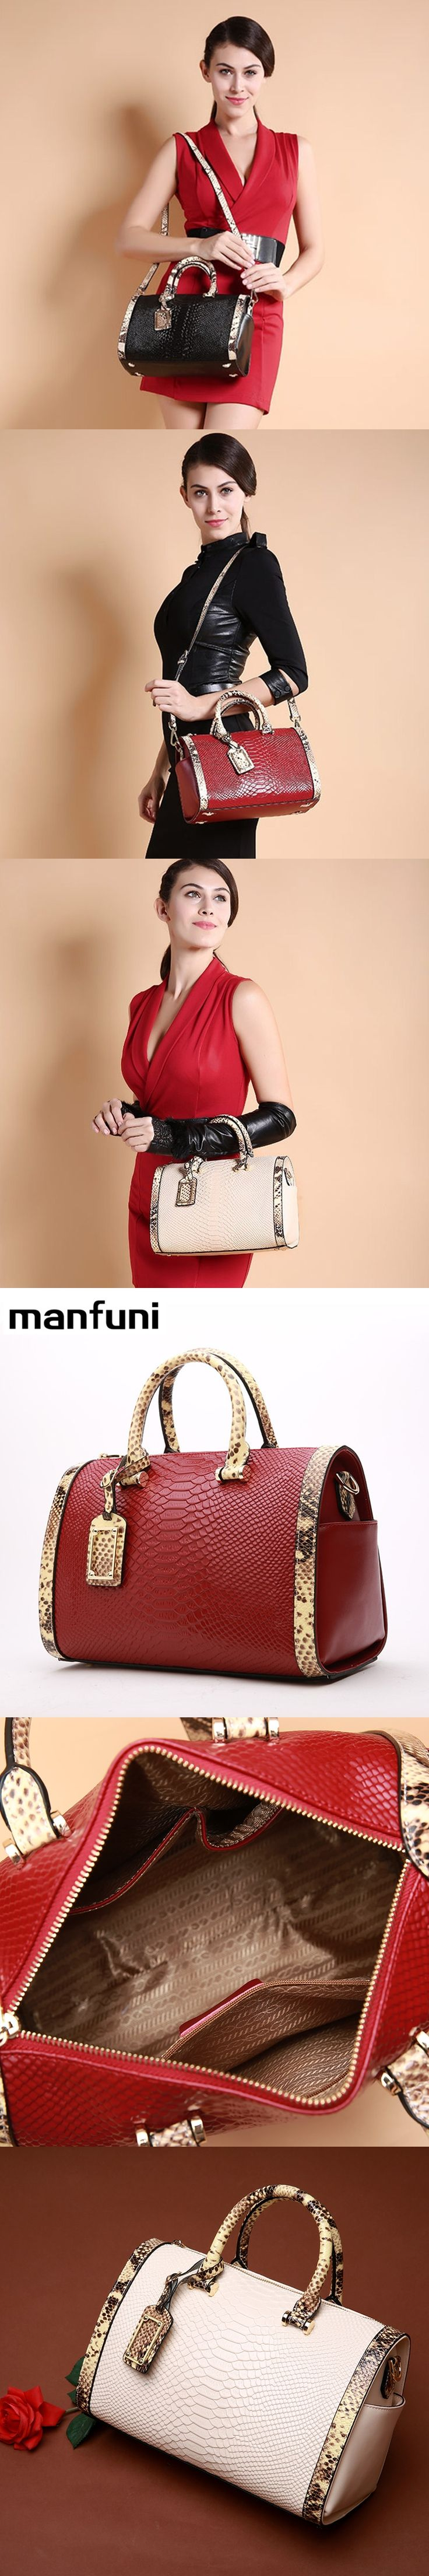 MANFUNI Top Fashion Handbags For women Serpentine genuine Leather Crossbody bags Ladies Famous Brands Snakeskin Boston Bag 0497